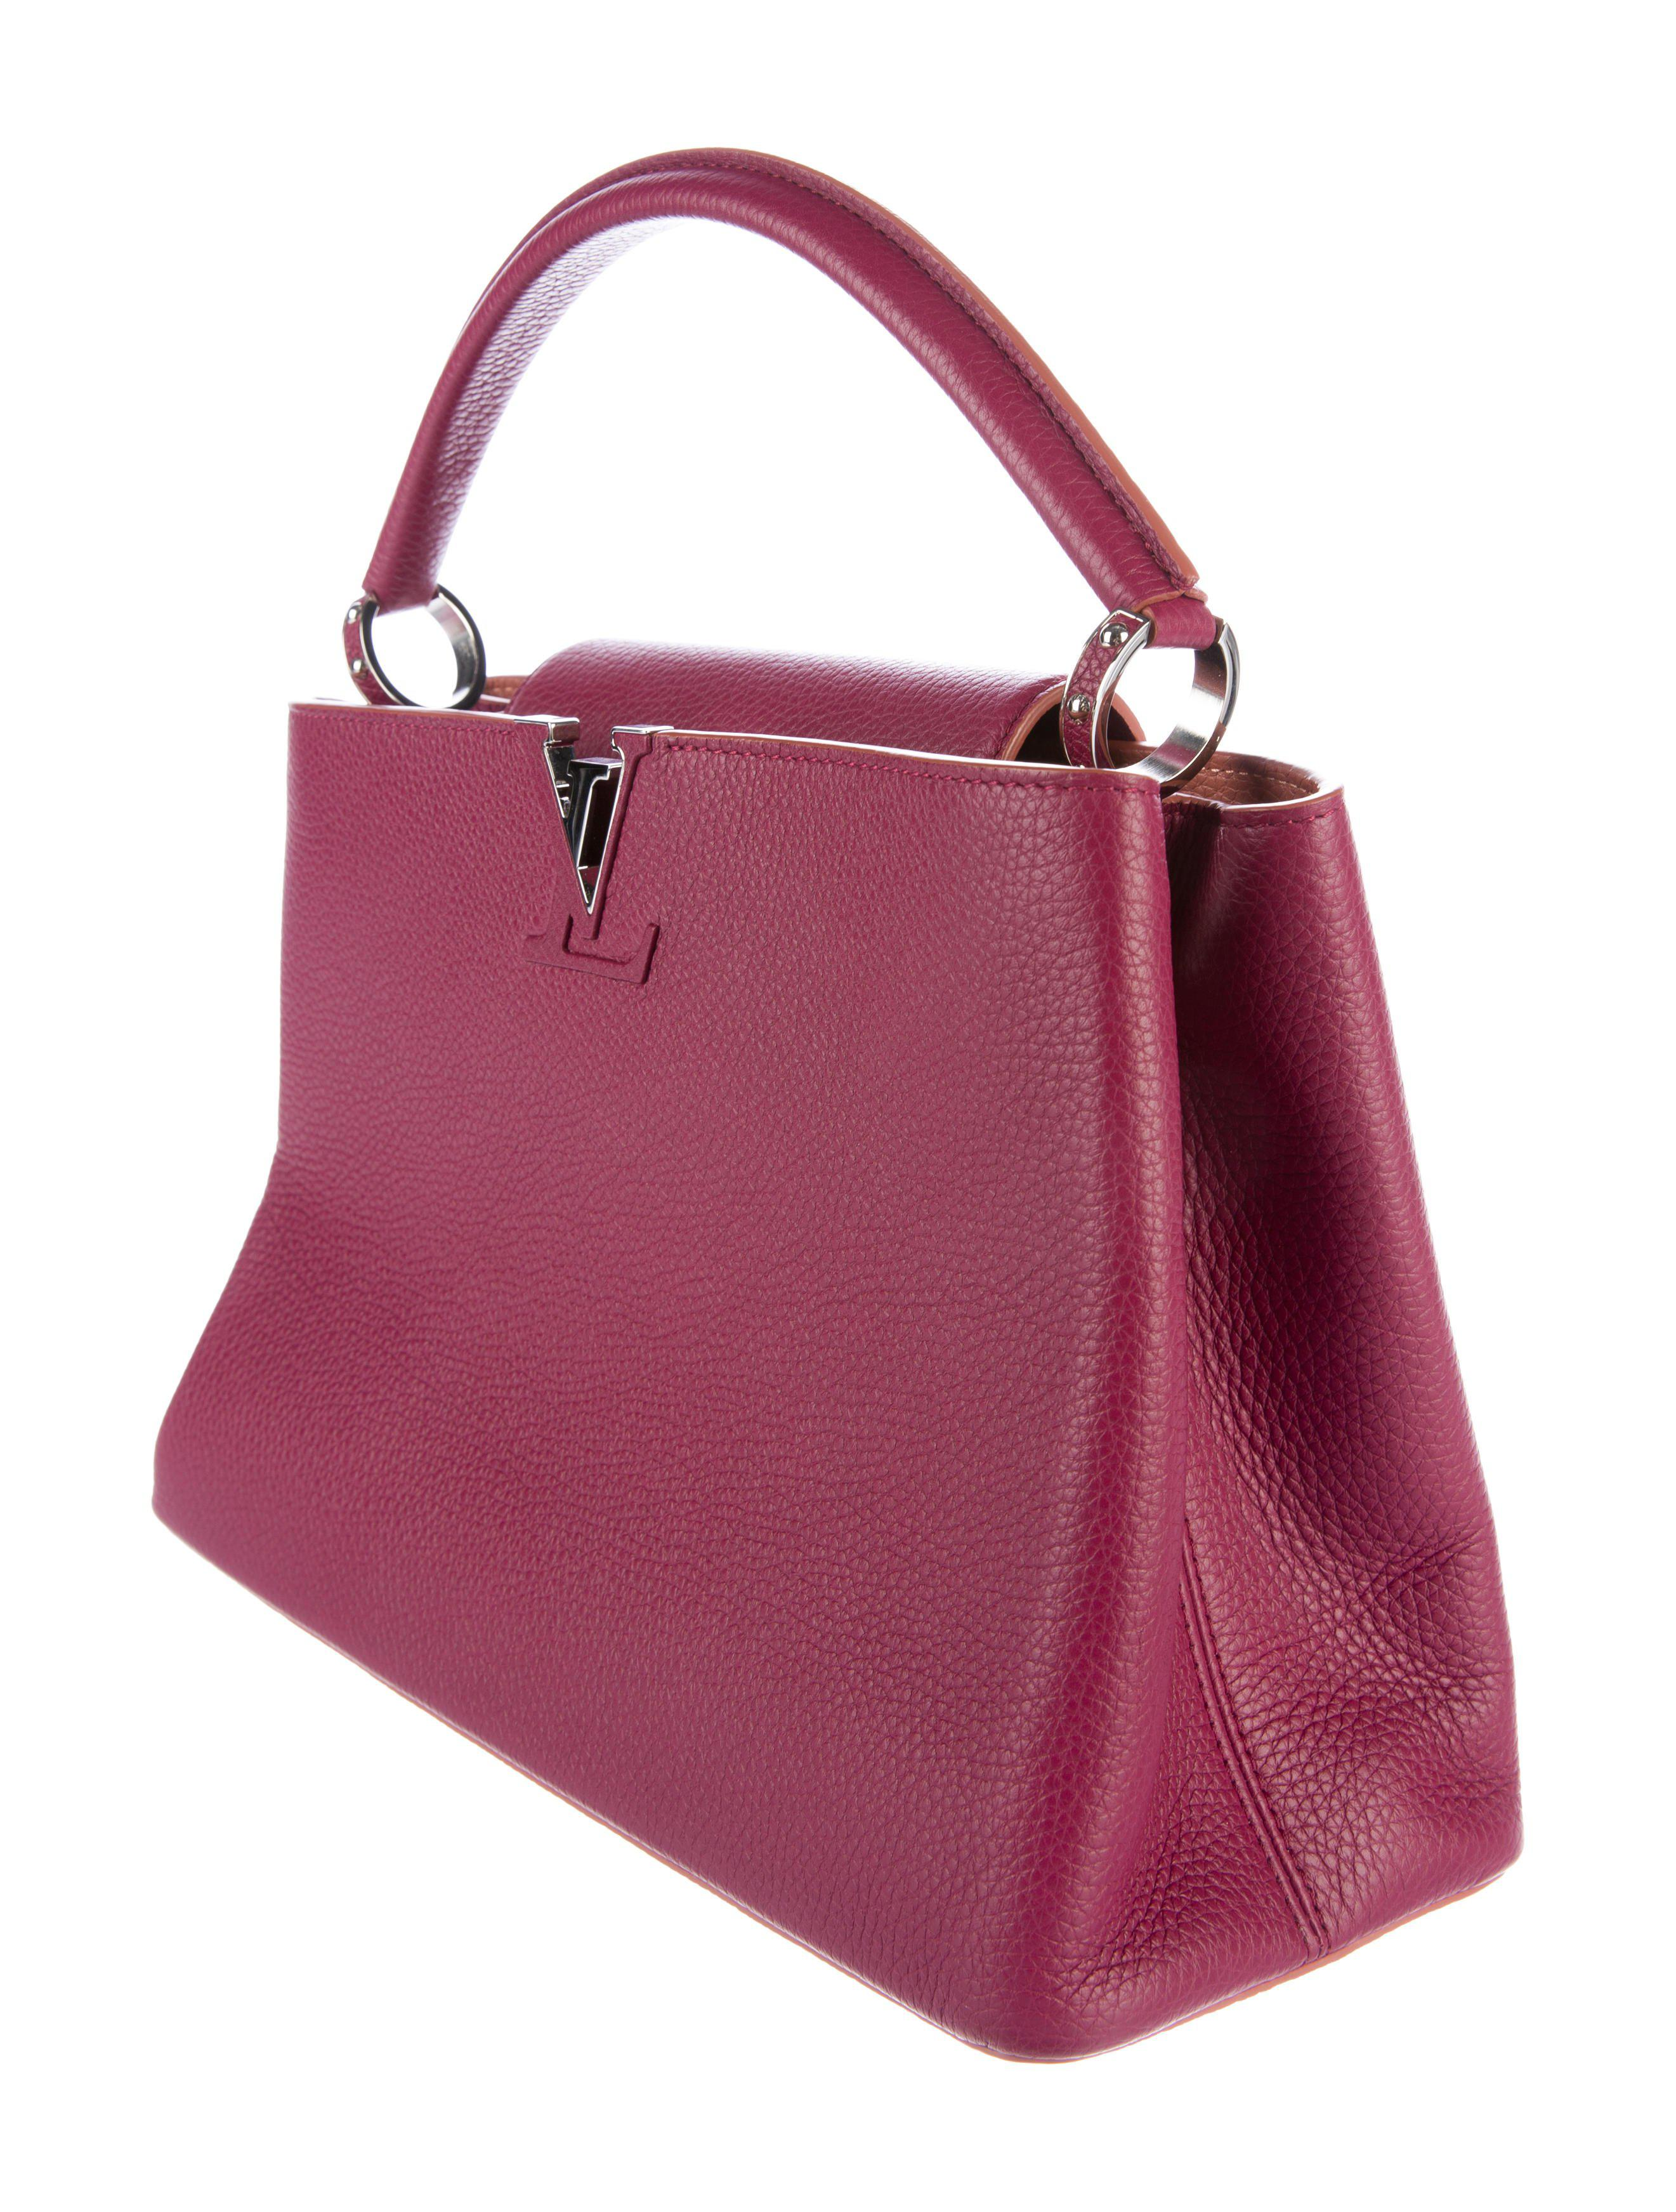 Lyst - Louis Vuitton 2015 Parnasséa Taurillon Capucines Mm Silver in ... 82430f9dff12f